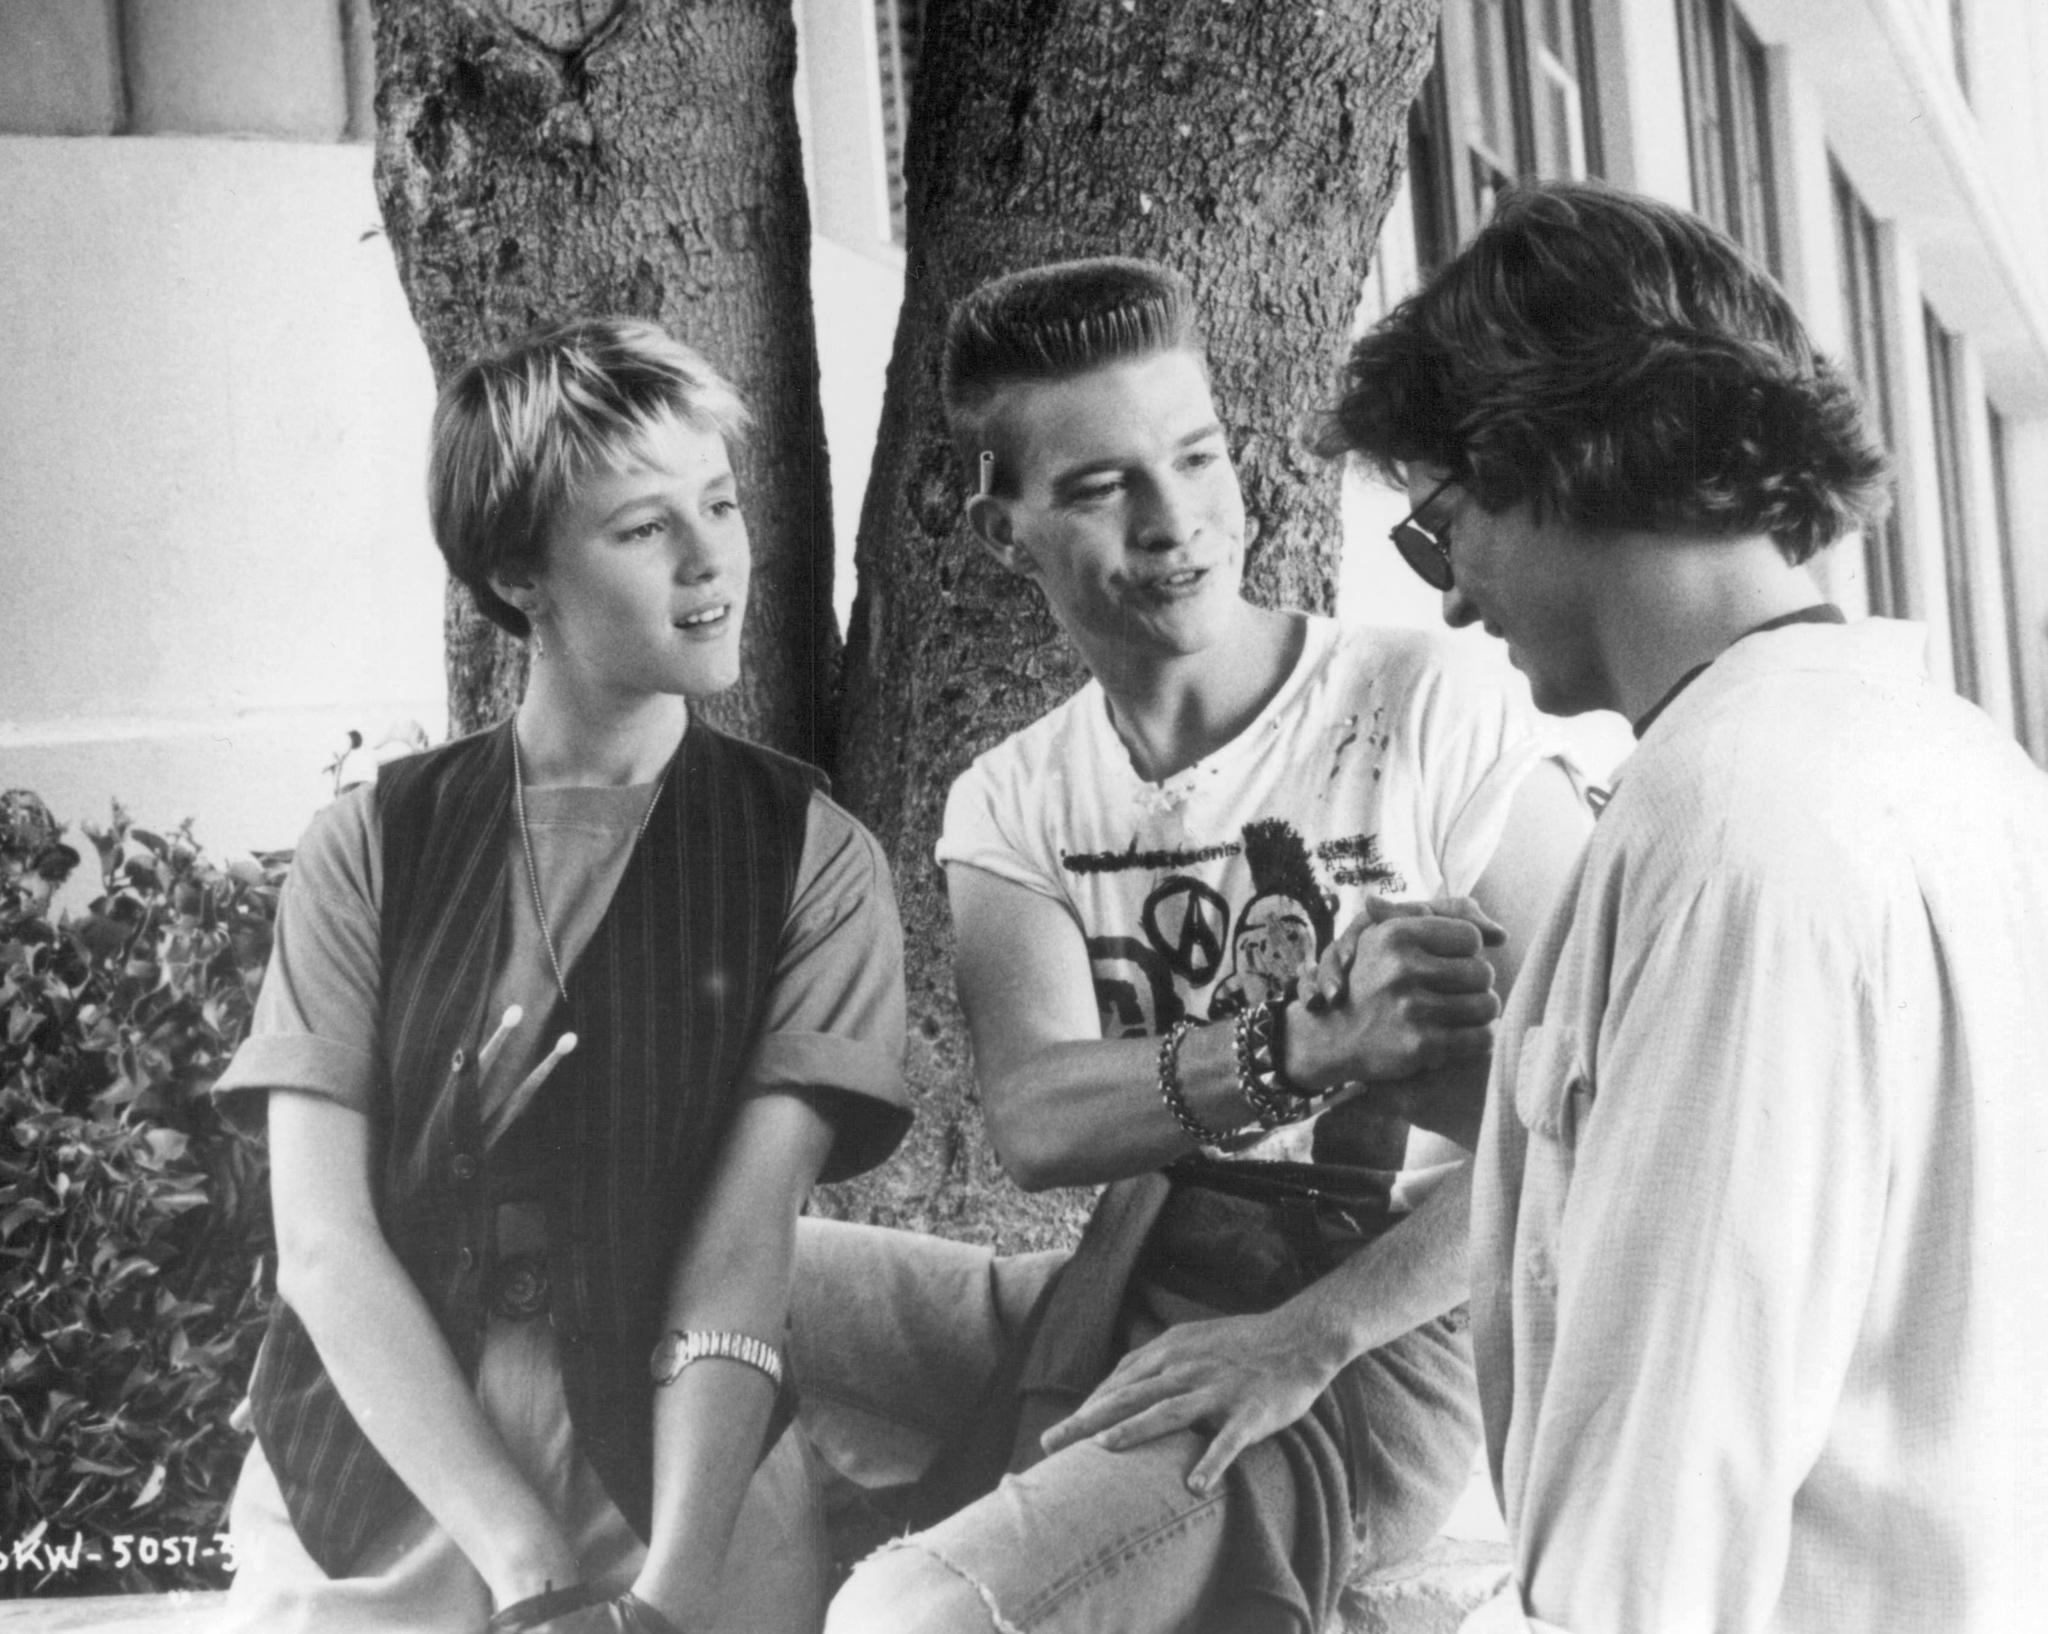 mary-stuart-masterson,-eric-stoltz,-and-scott-coffey-in-some-kind-of-wonderful-(1987).jpg